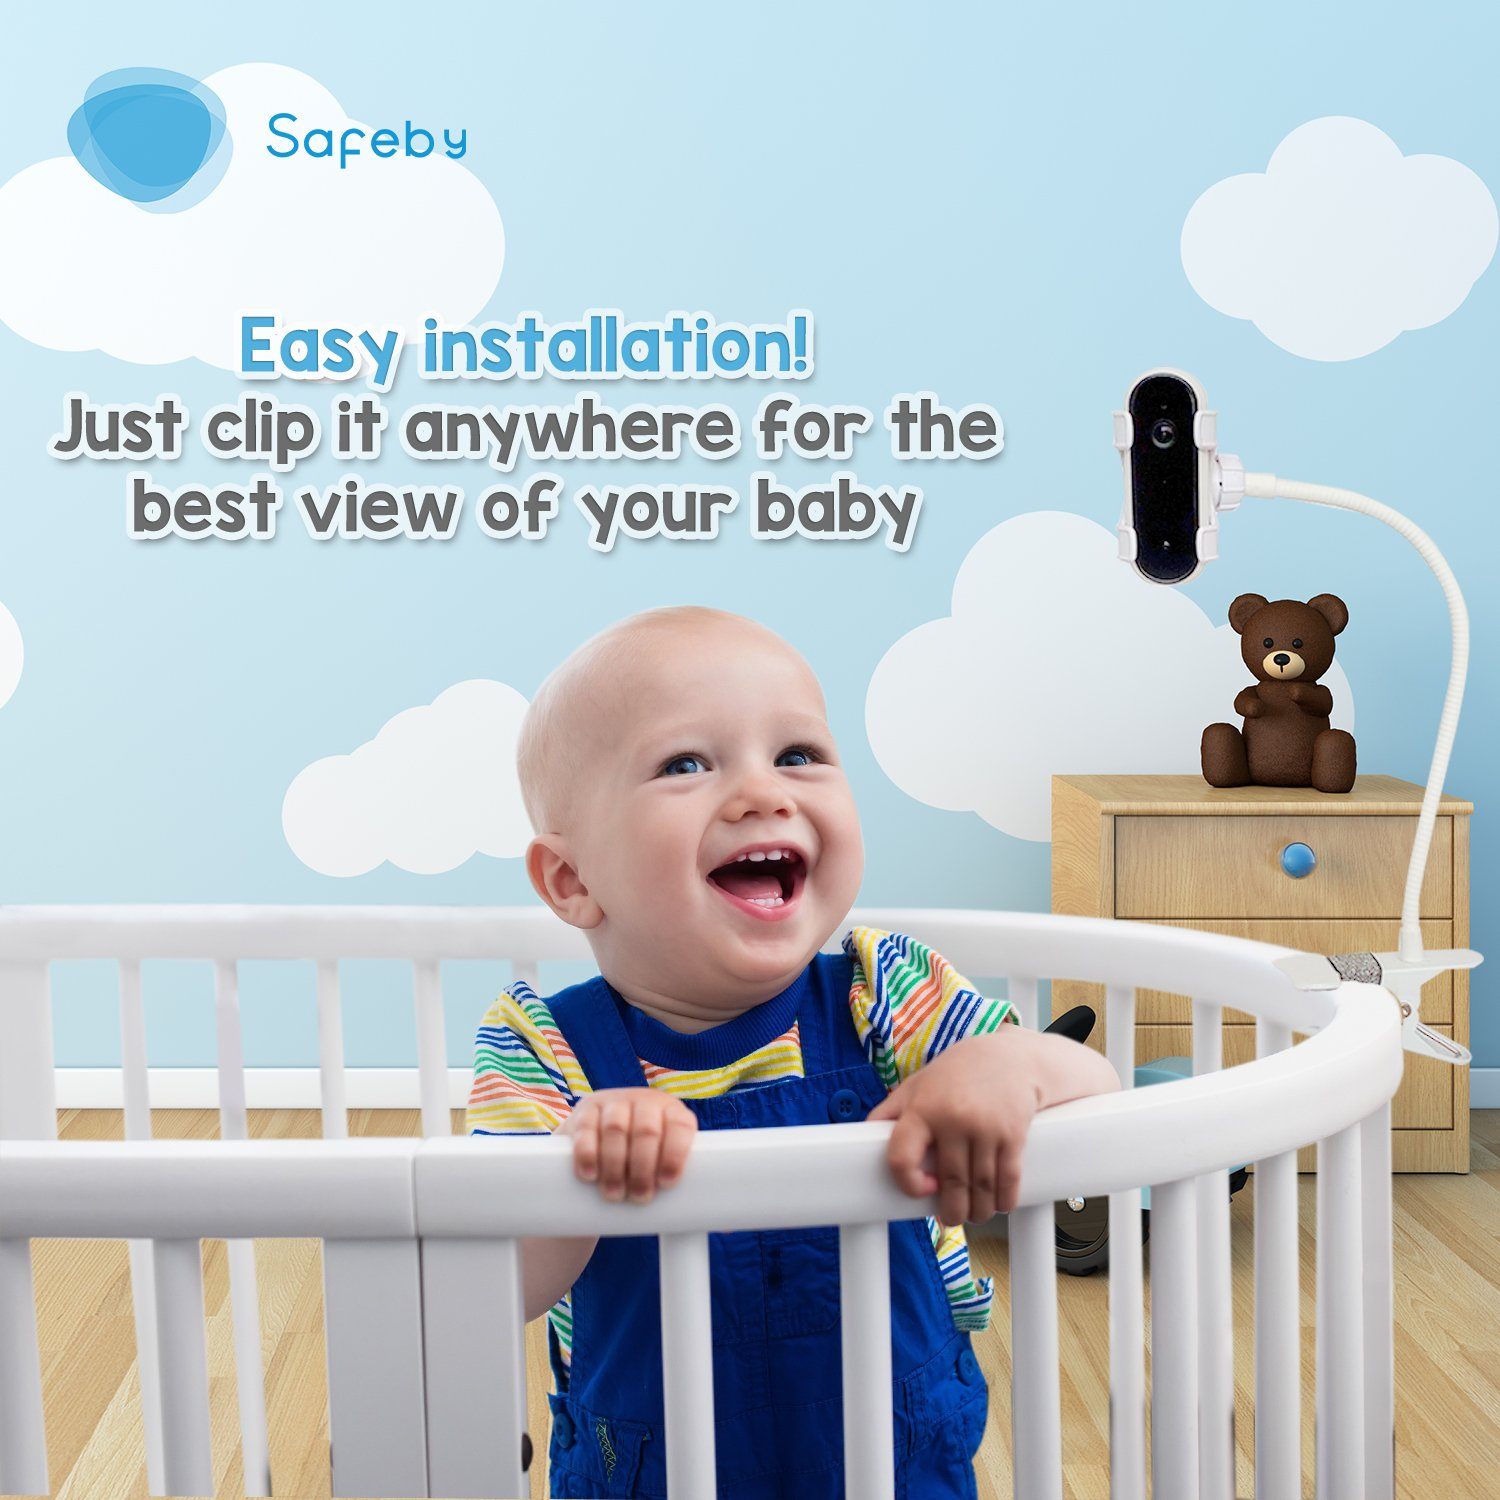 Safeby Video Baby Monitor With Camera And Audio – Crib Mount, iPhone Compatible, HD, Two-Way Talk, InfraRed, Night Vision, Portable WiFi Nanny Cam, App for Any Smart Phone, Unlimited Range Easy Set-Up by Safeby (Image #3)